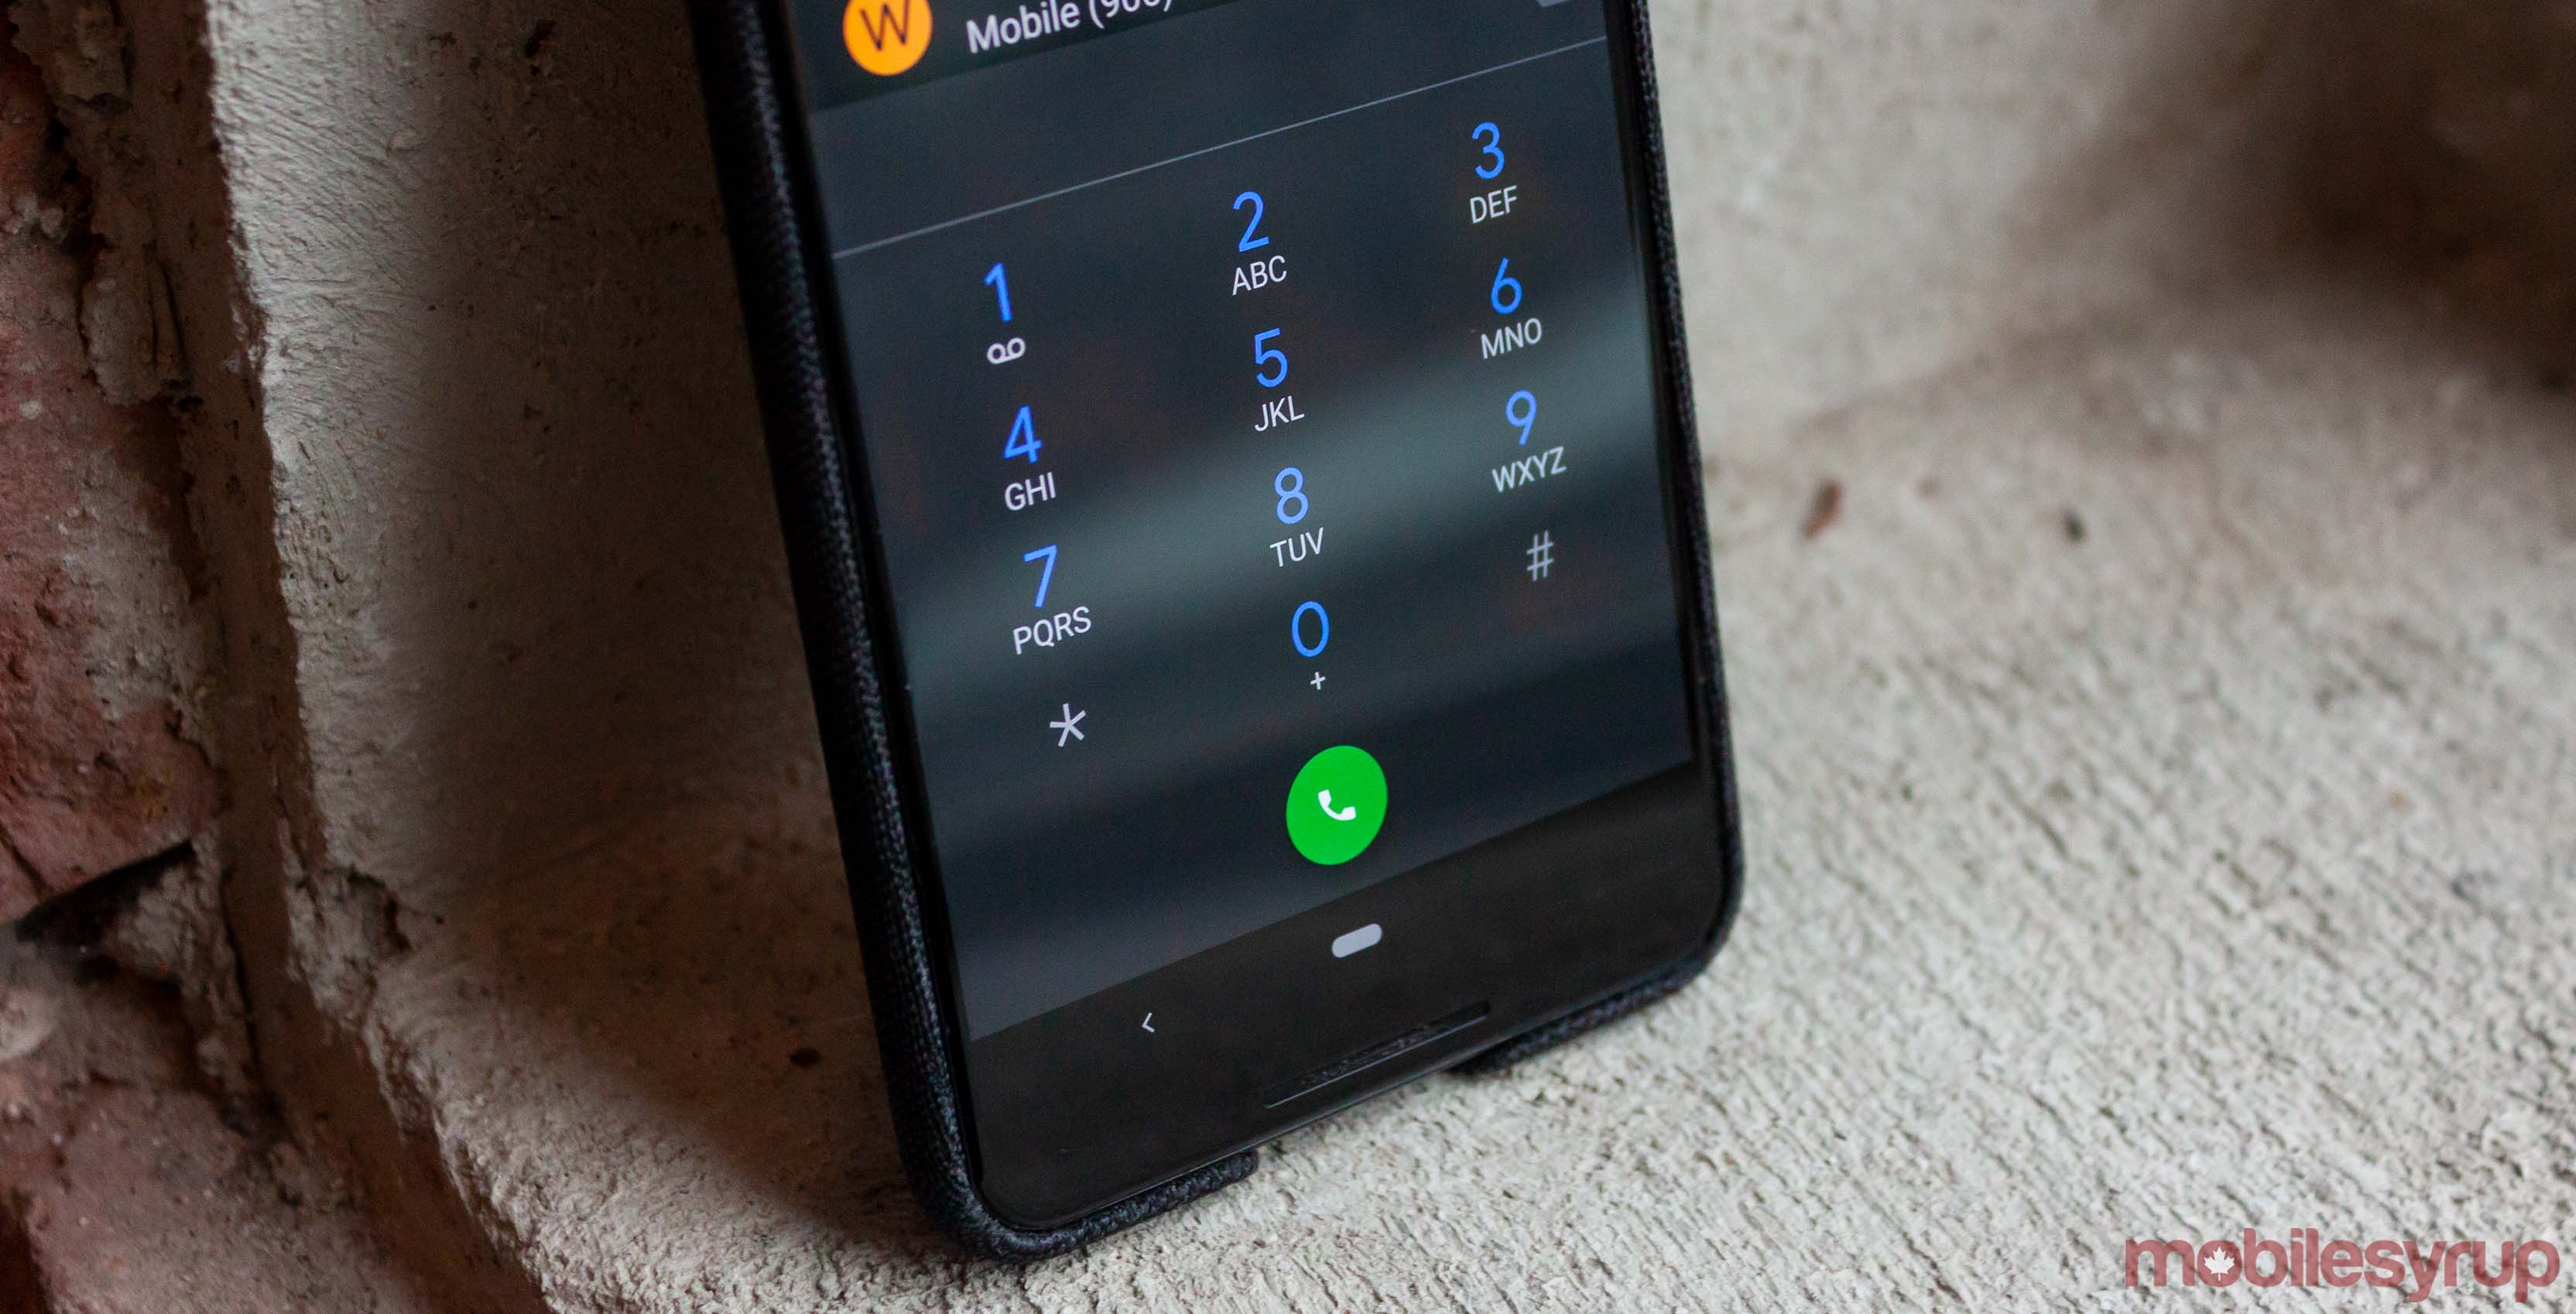 dc40068374a Canadian Pixel owners can now beta test Call Screen